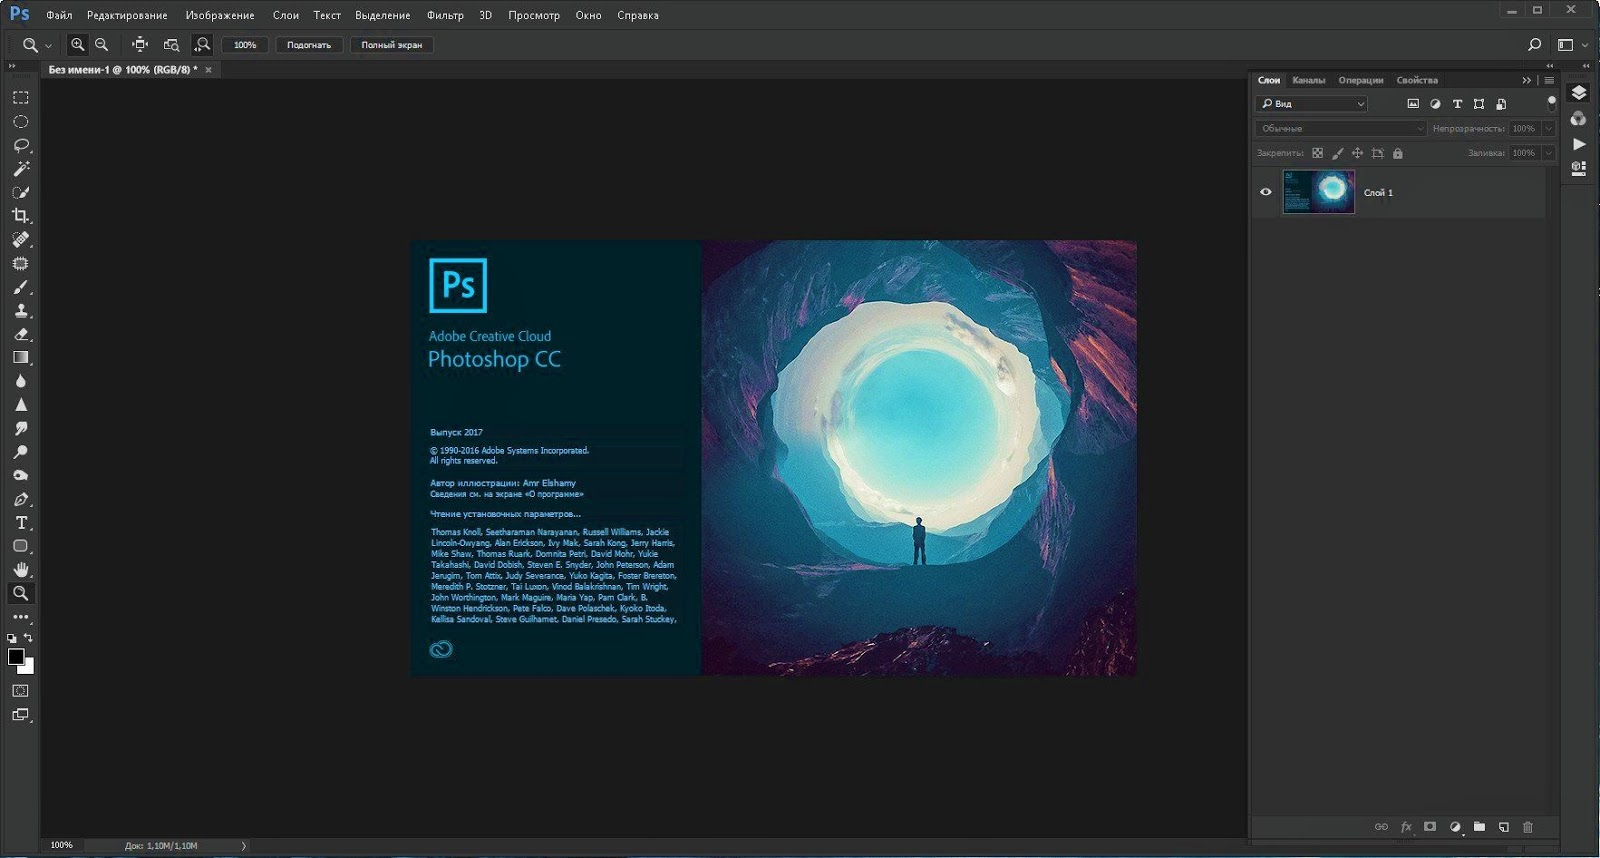 Adobe Photoshop CC Full Version 2020